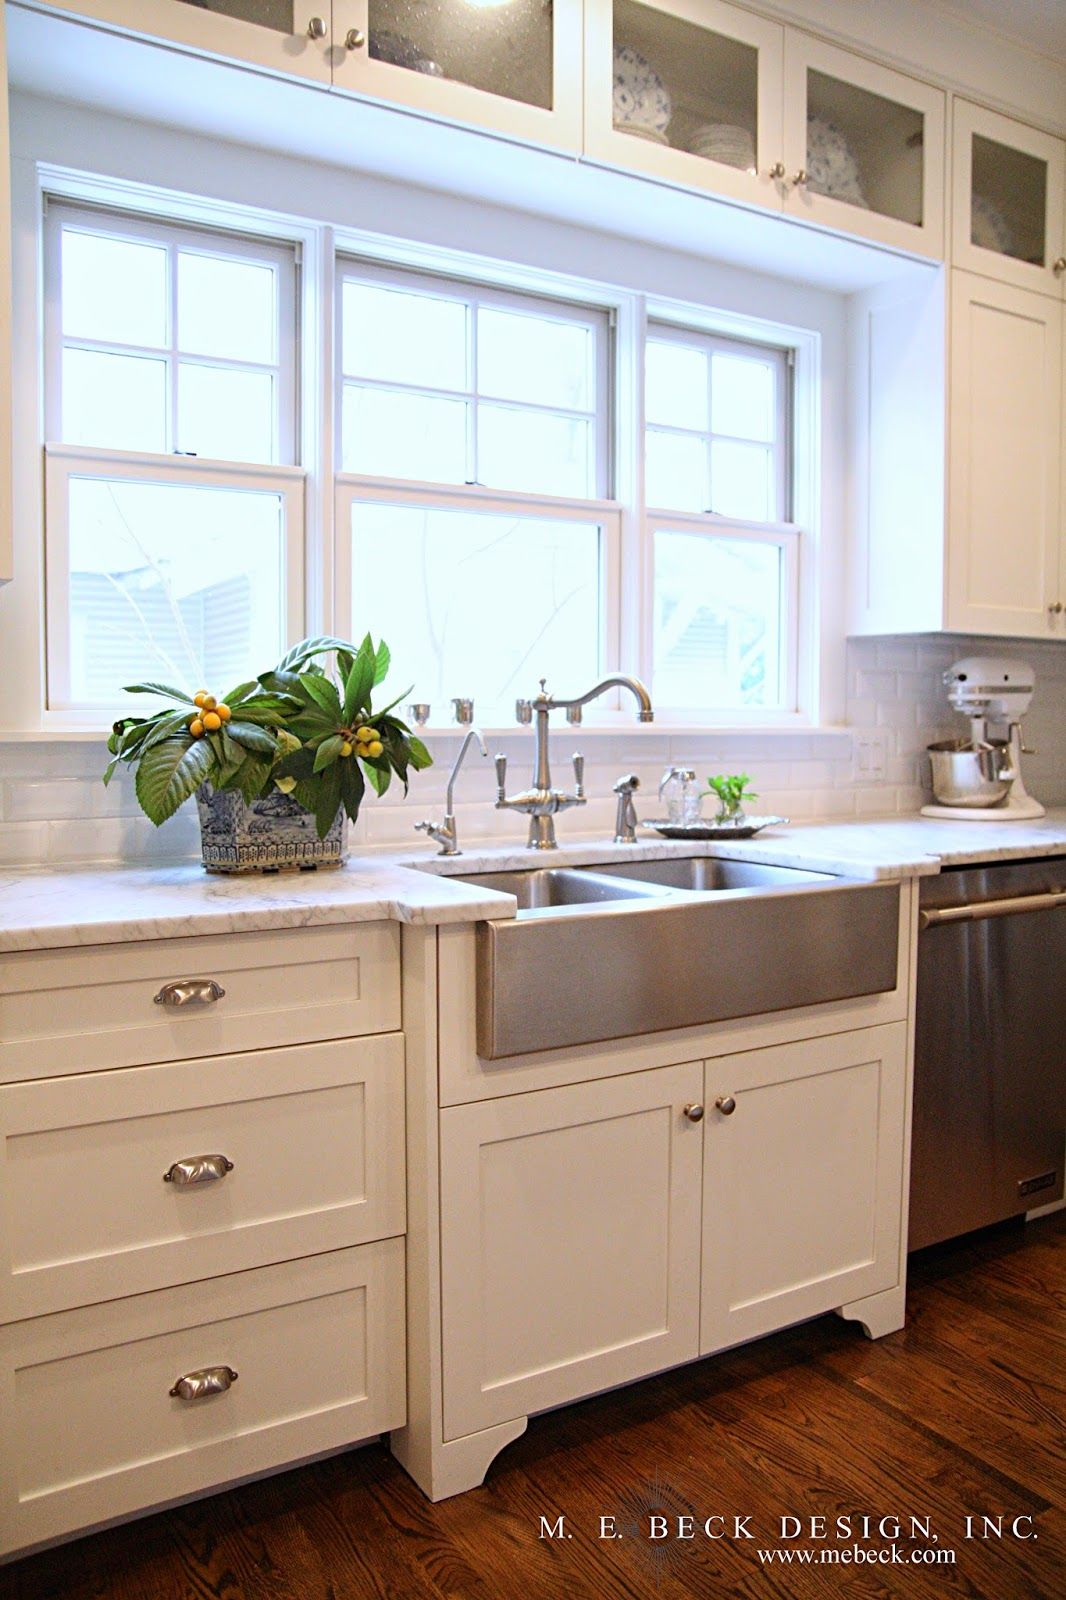 Kitchen backsplash near window  lit glass front cabinets above windows instead of fixed transom